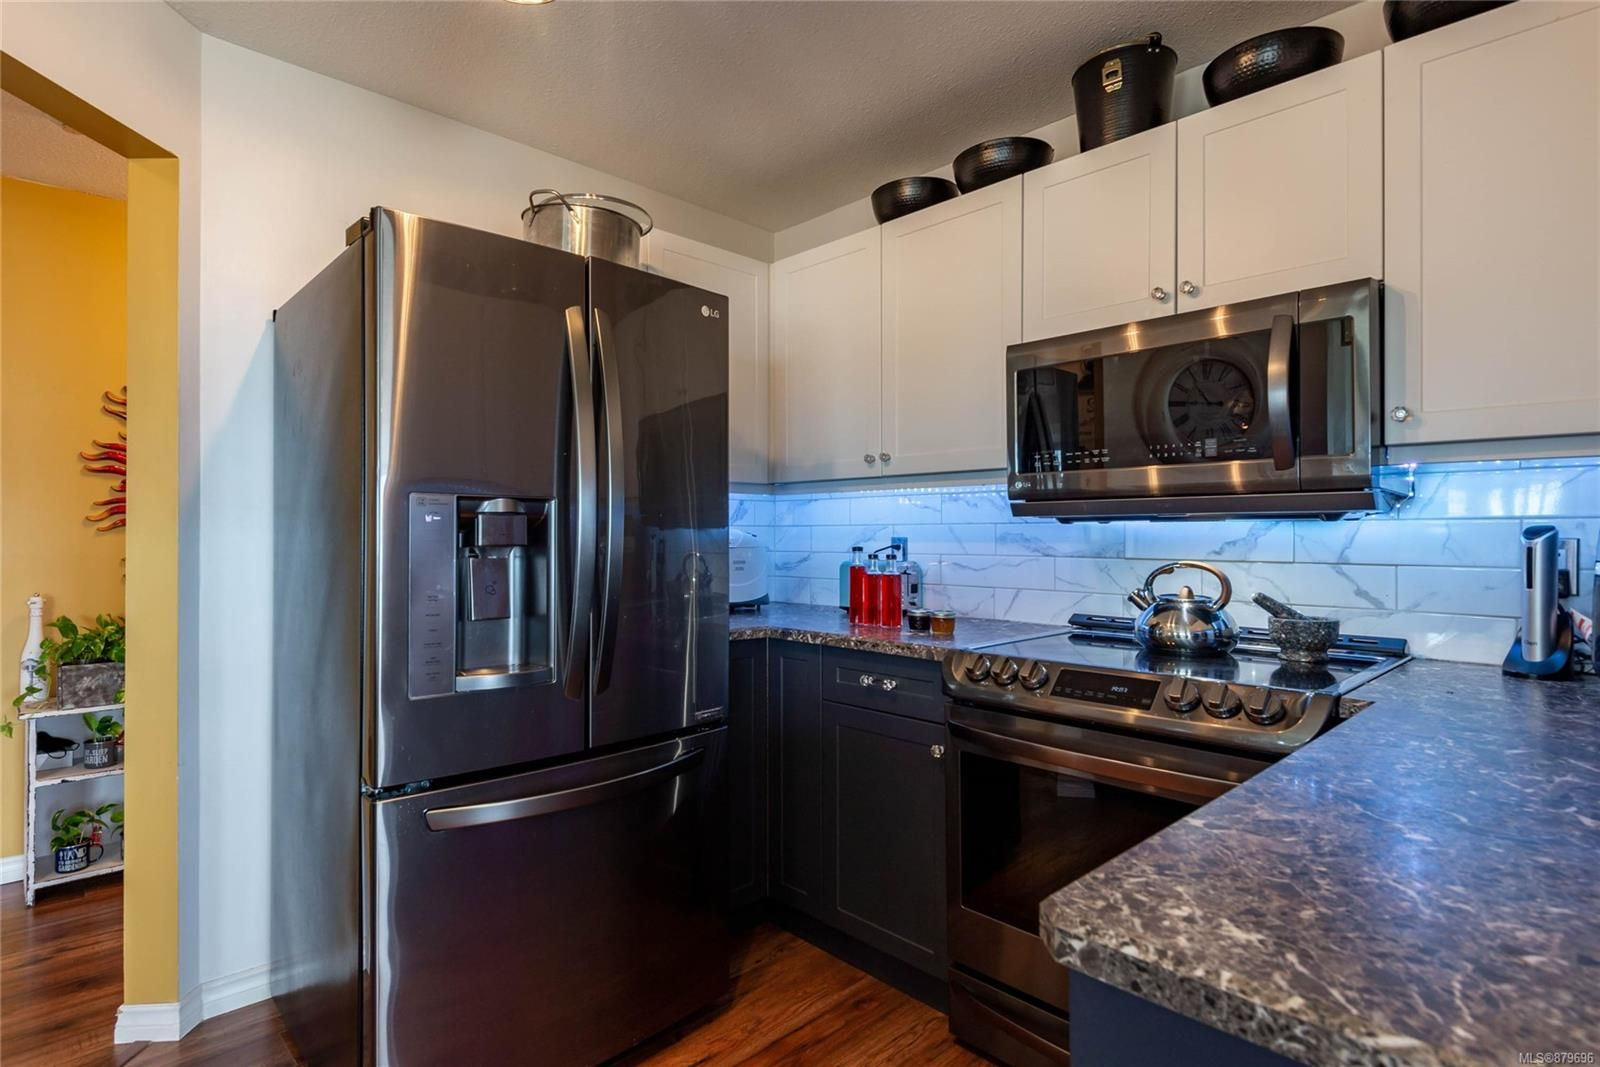 Photo 7: Photos: 219 390 S Island Hwy in : CR Campbell River West Condo for sale (Campbell River)  : MLS®# 879696